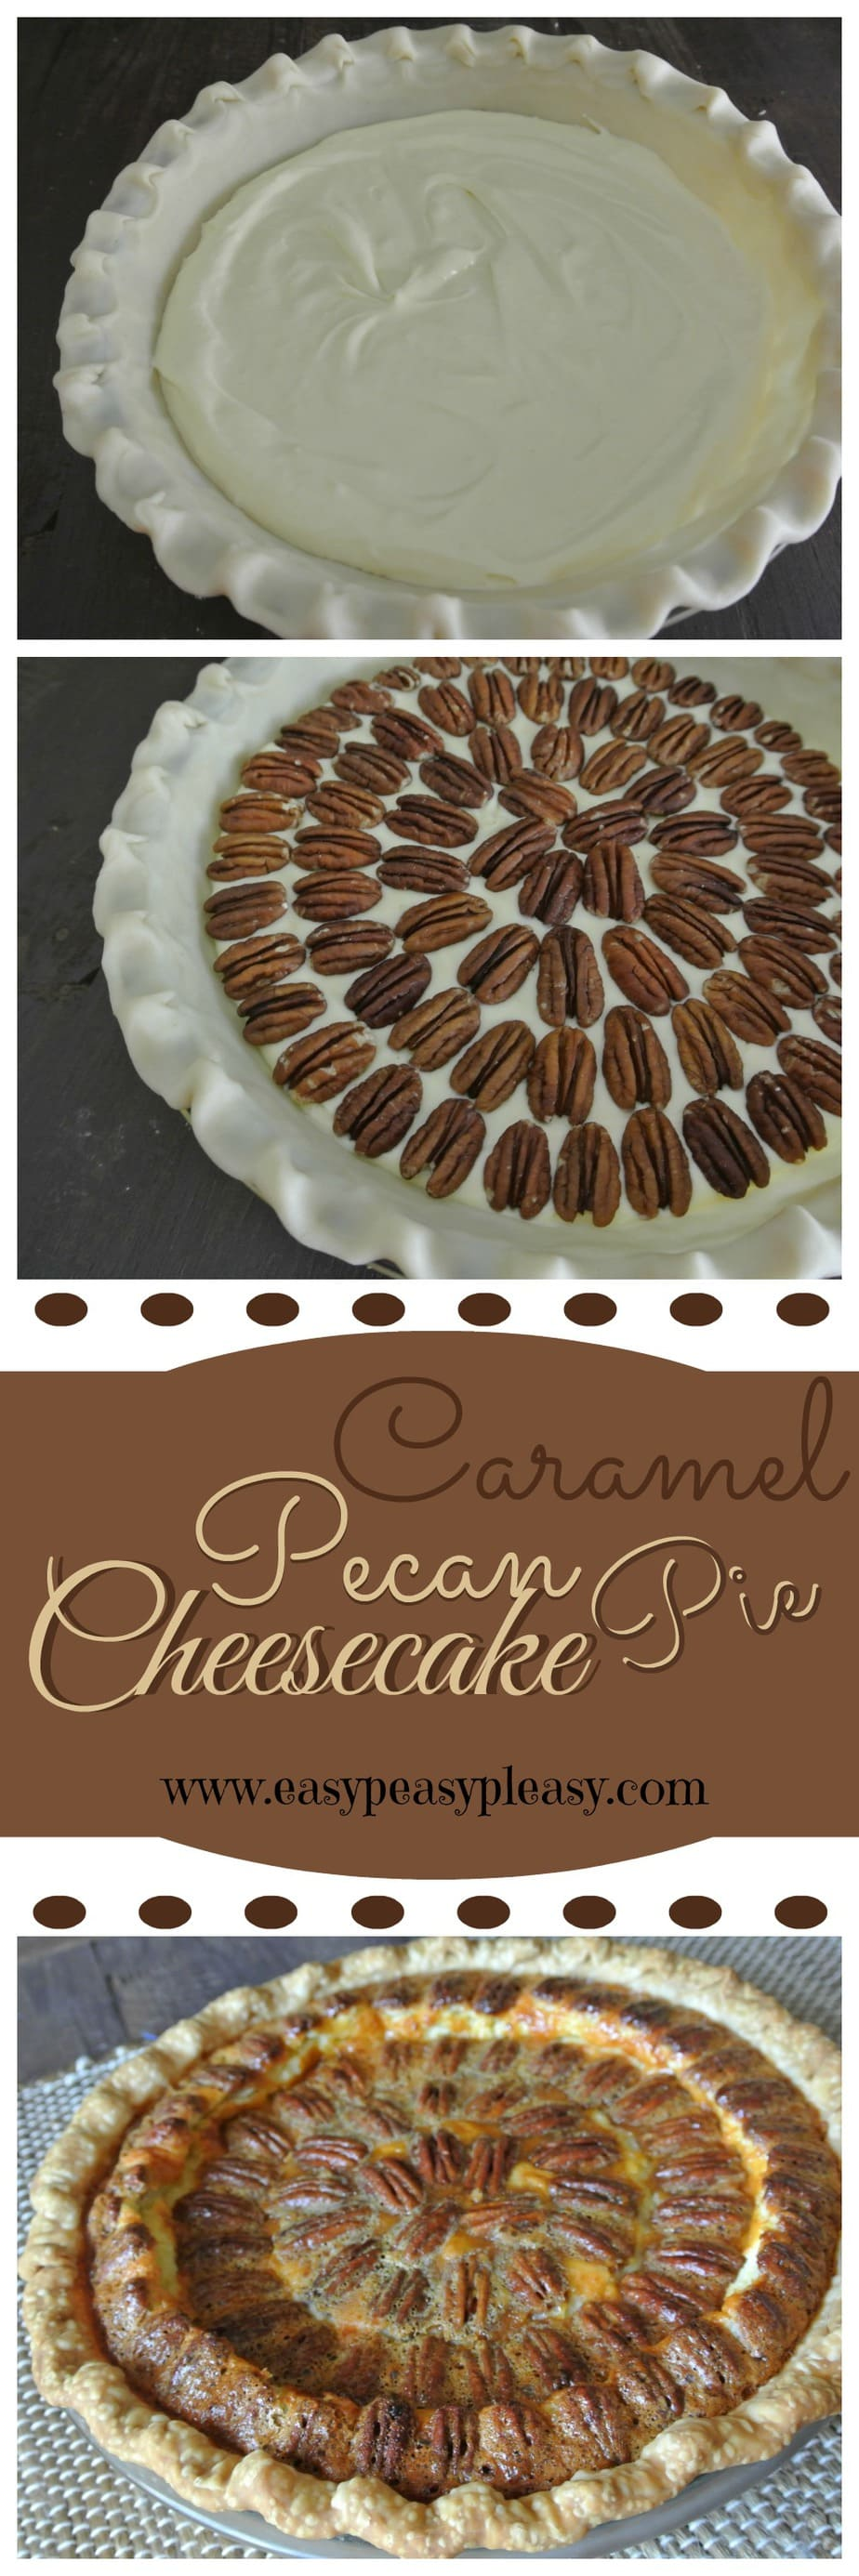 Caramel Pecan Cheesecake Pie will take the place of your original pecan pie! You must see the steps!